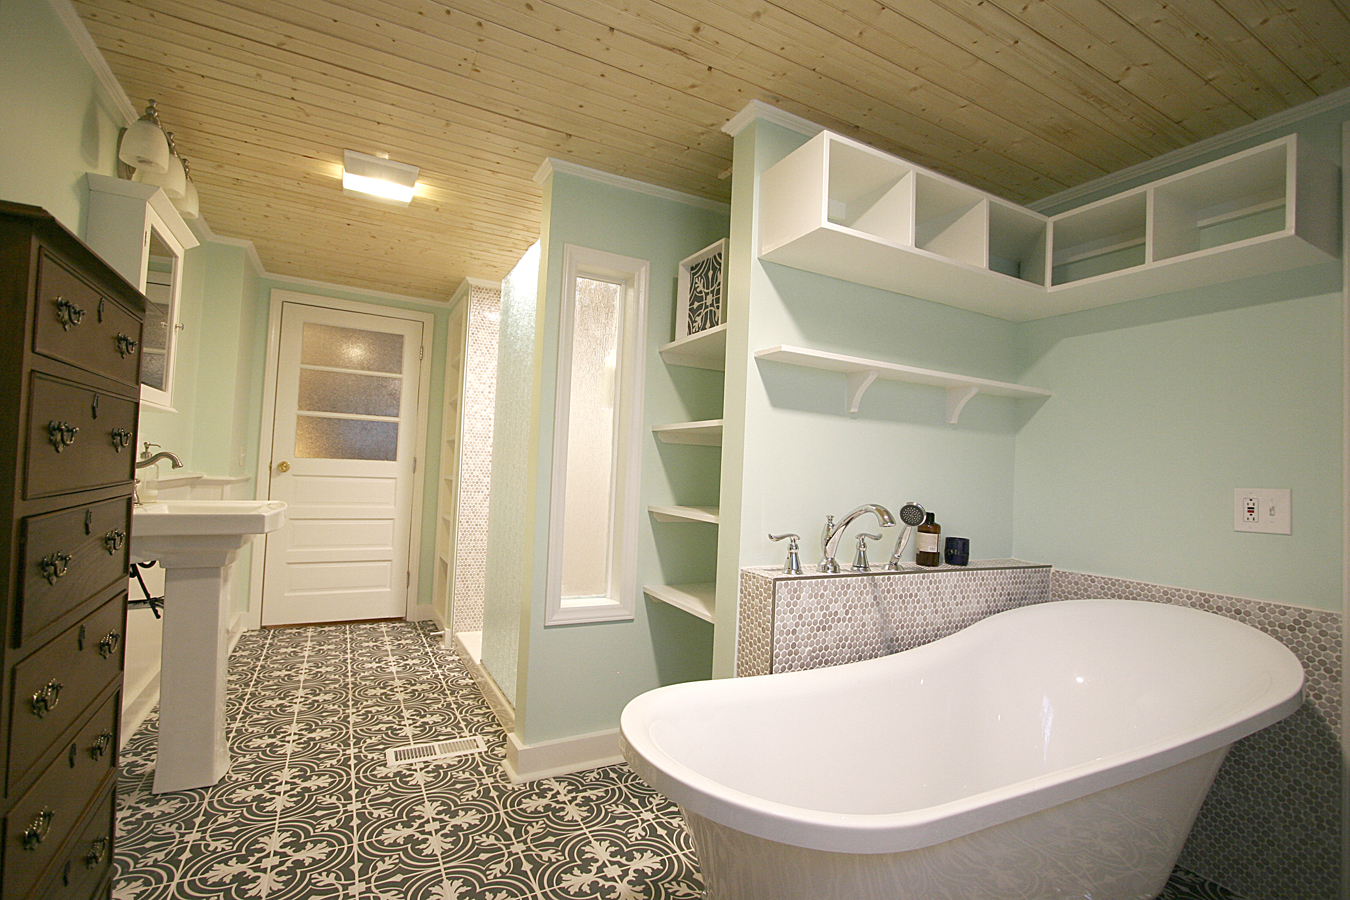 Era-Sensitive 20th Century Farmhouse Bathroom Remodel & Addition